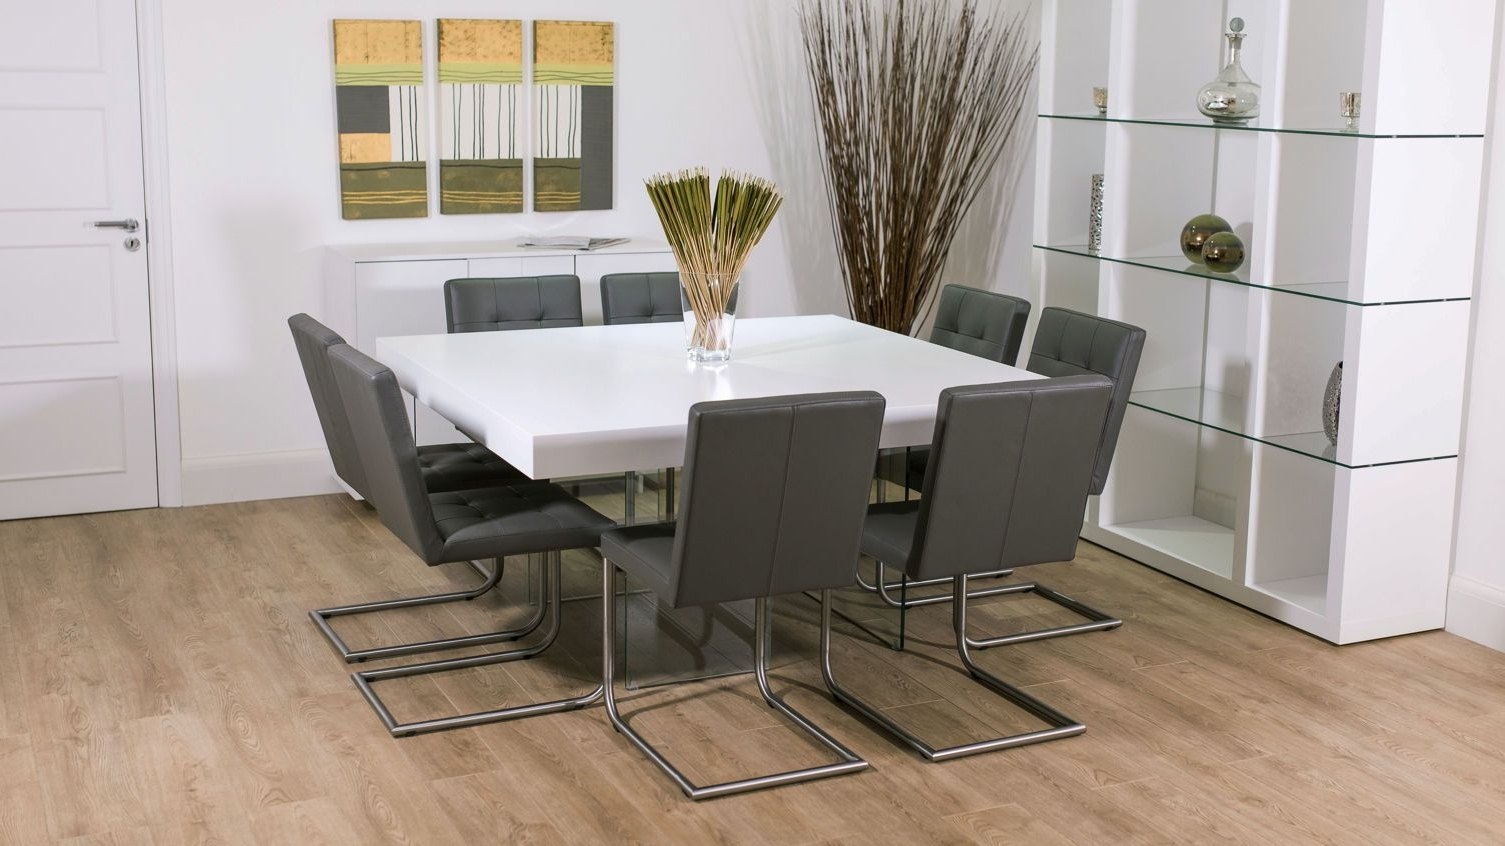 8 Seater Square Glass Dining Table